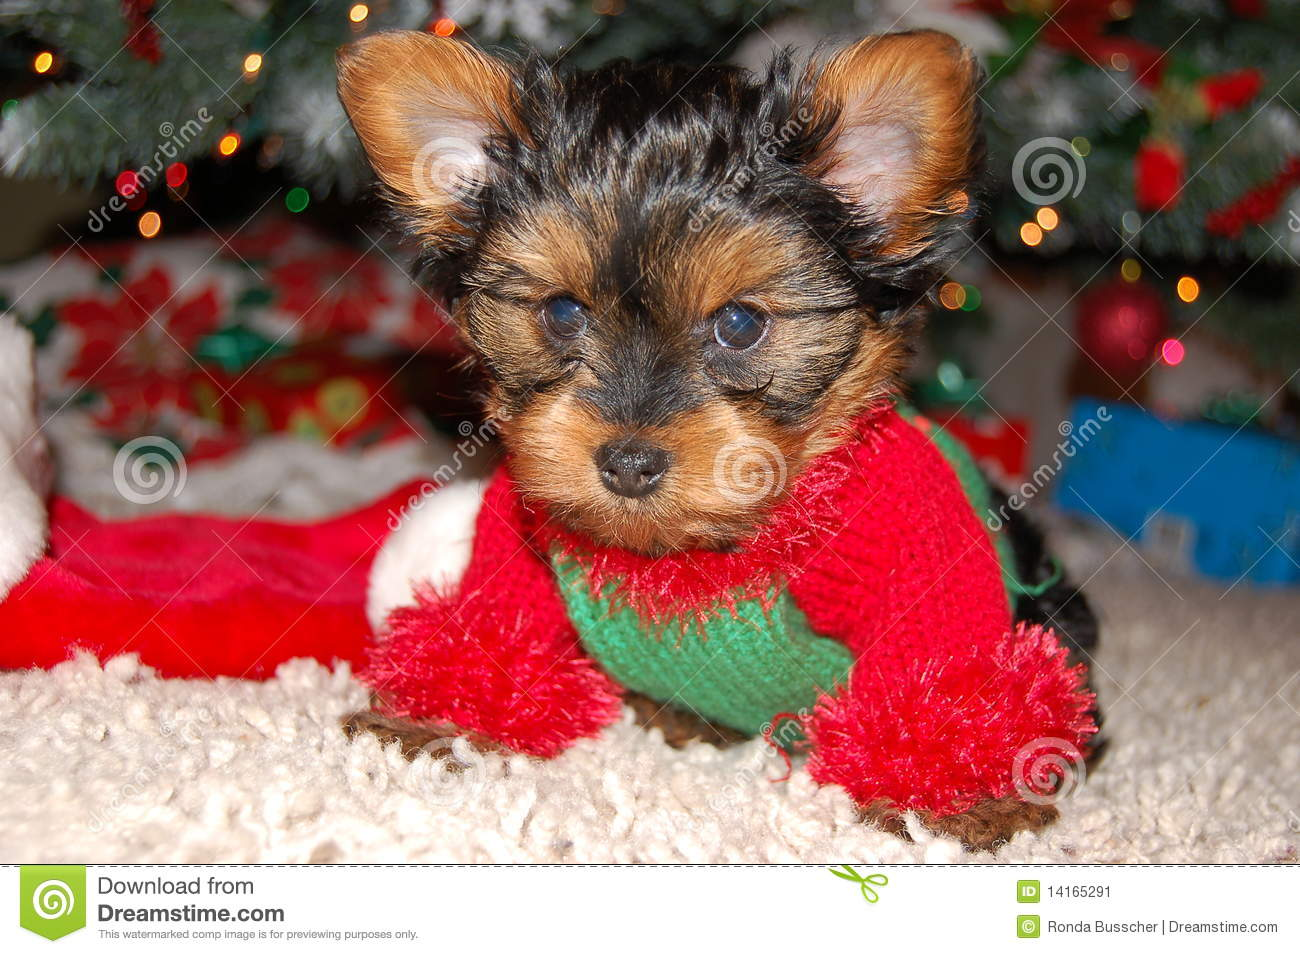 Dog Modeling Christmas Sweater Stock Image - Image: 14165291